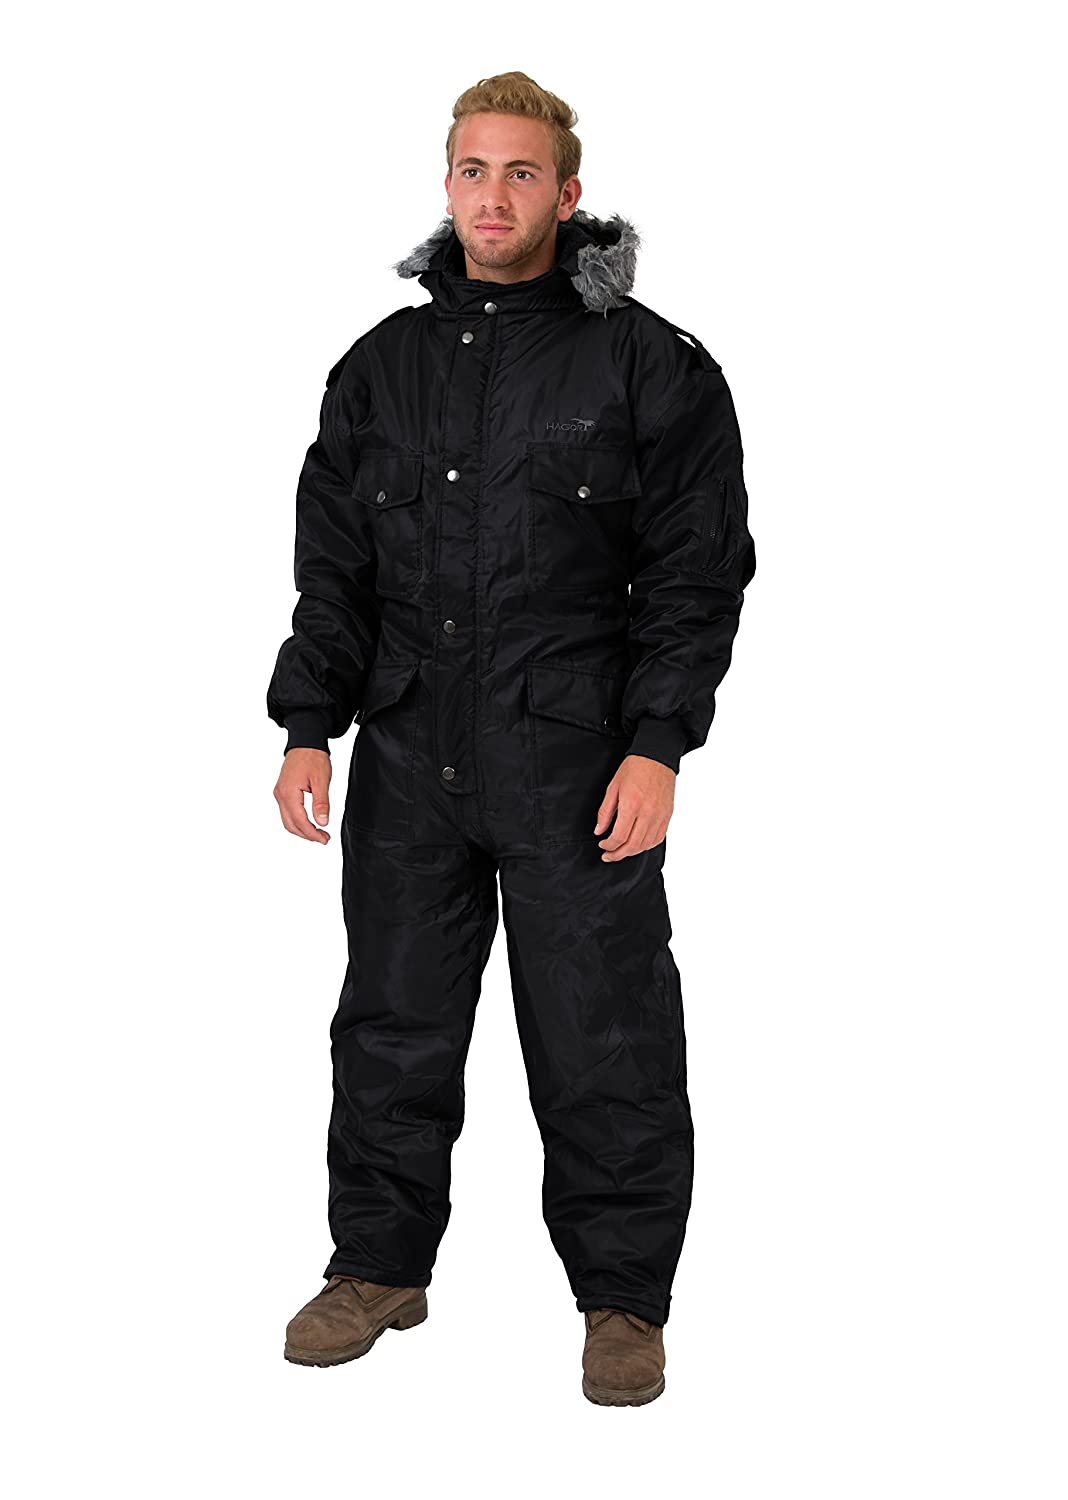 Black Snowsuit Winter Clothing Snow Ski Suit Coverall Insulated Suit HAGOR